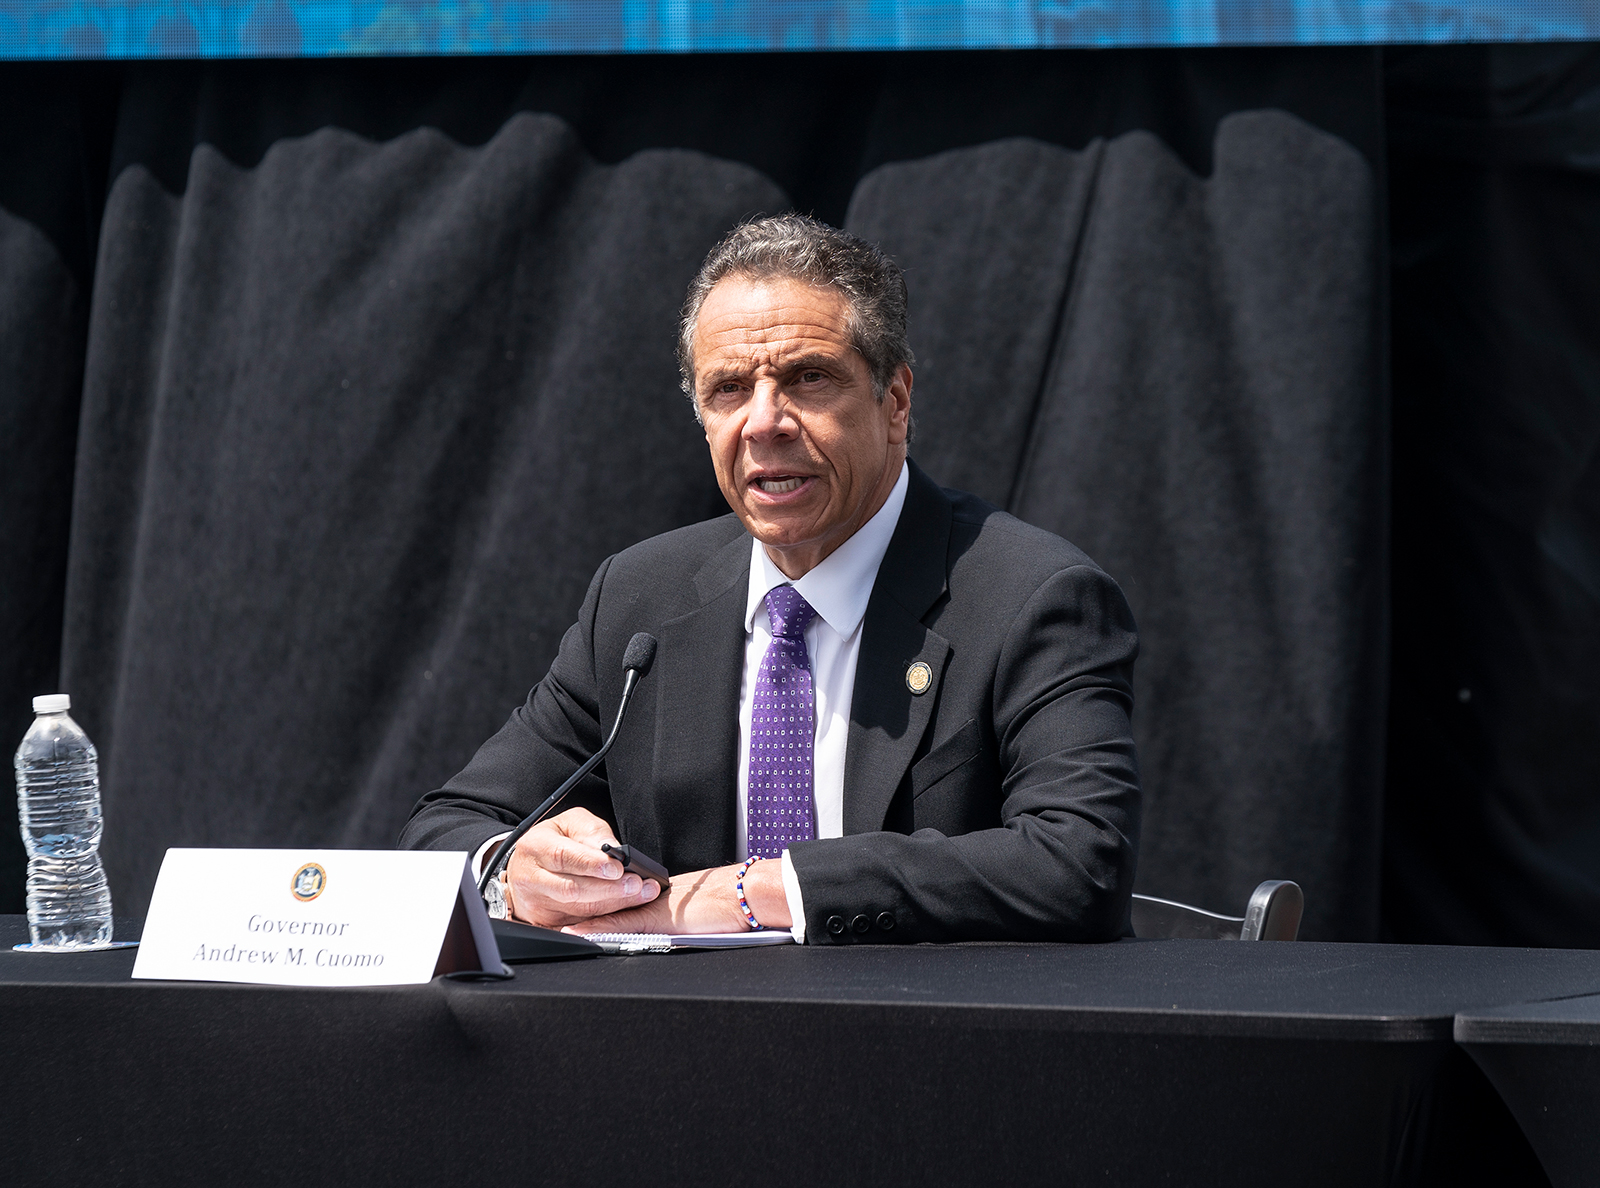 The governor of New York signed several laws on police reform